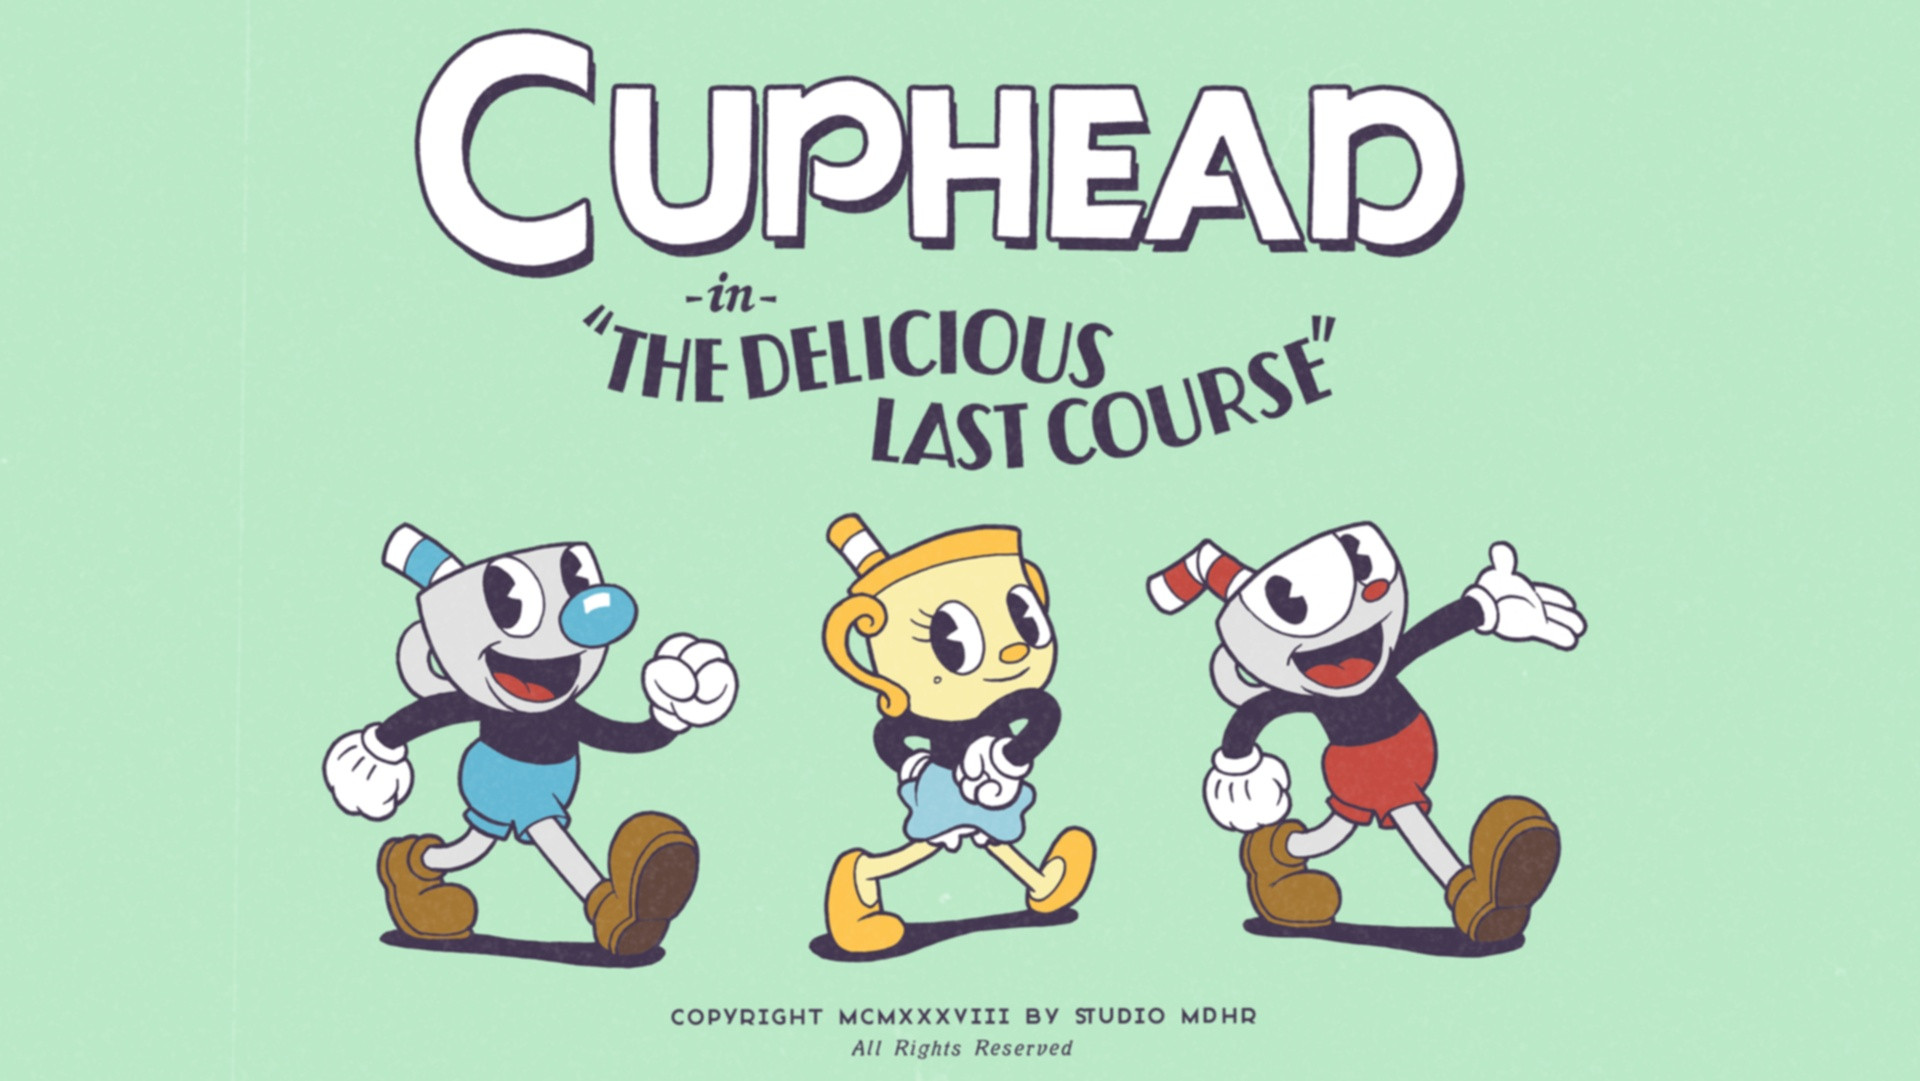 Your First Bite of The Delicious Last Course with an Update from Studio MDHR on Cuphead DLC